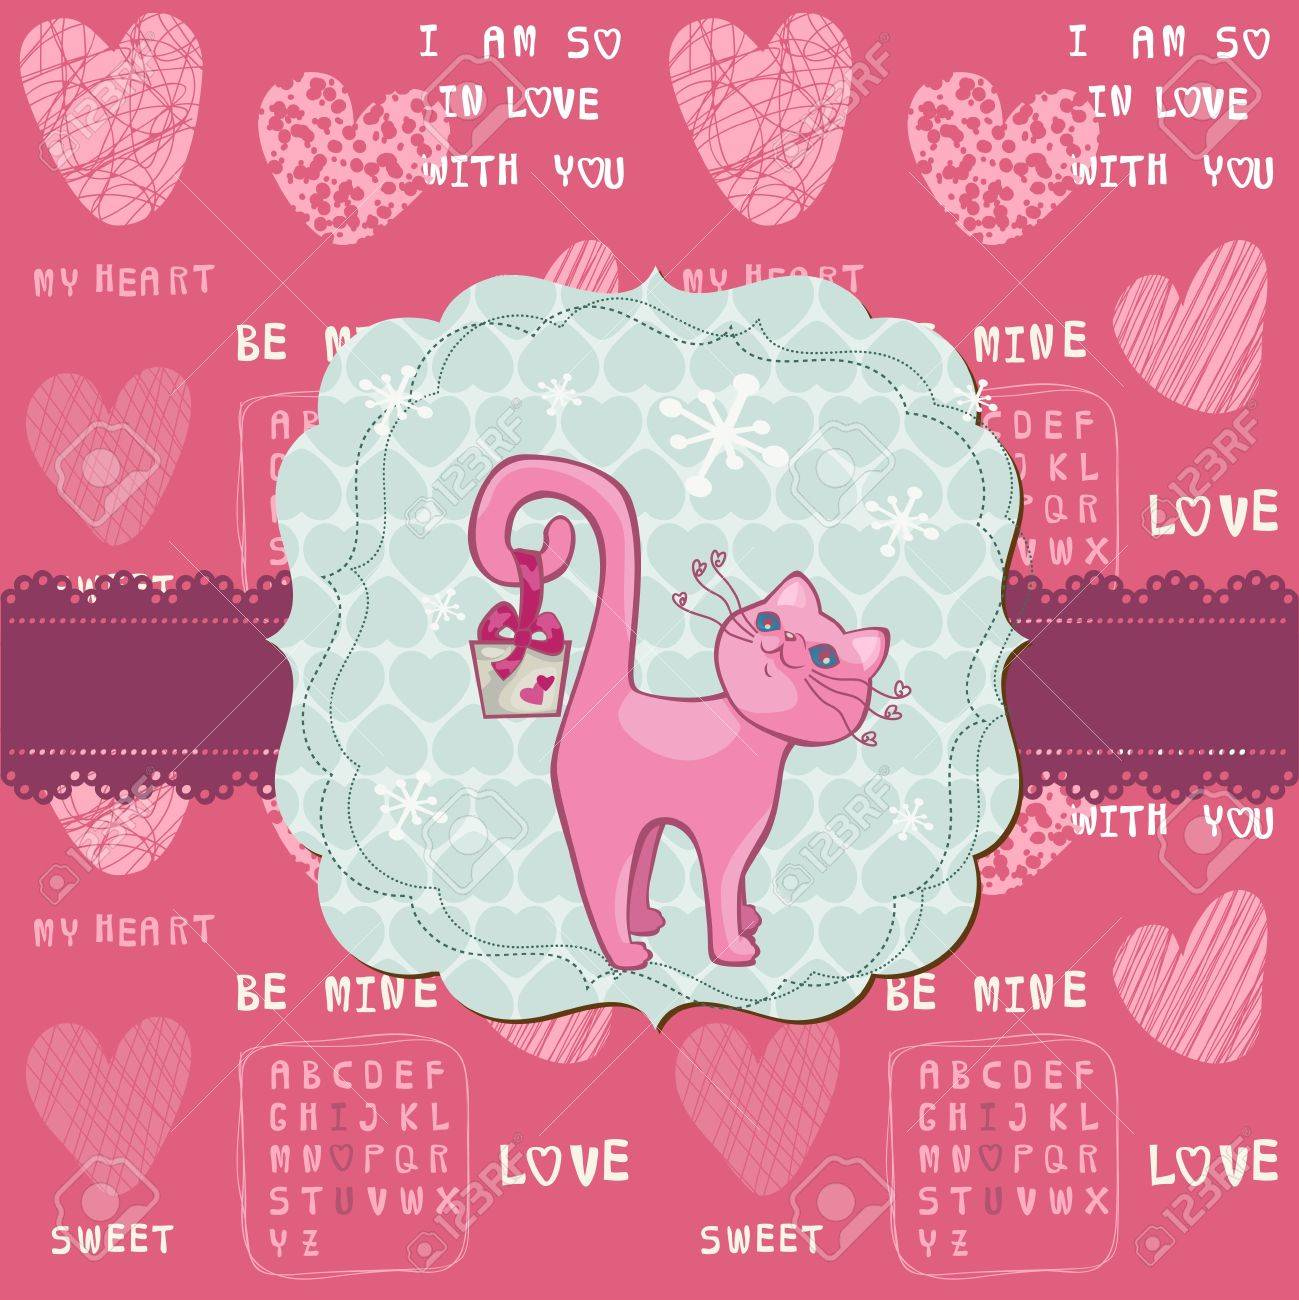 Cute Love Card With Cat For Valentines Day Greetings Scrapbook